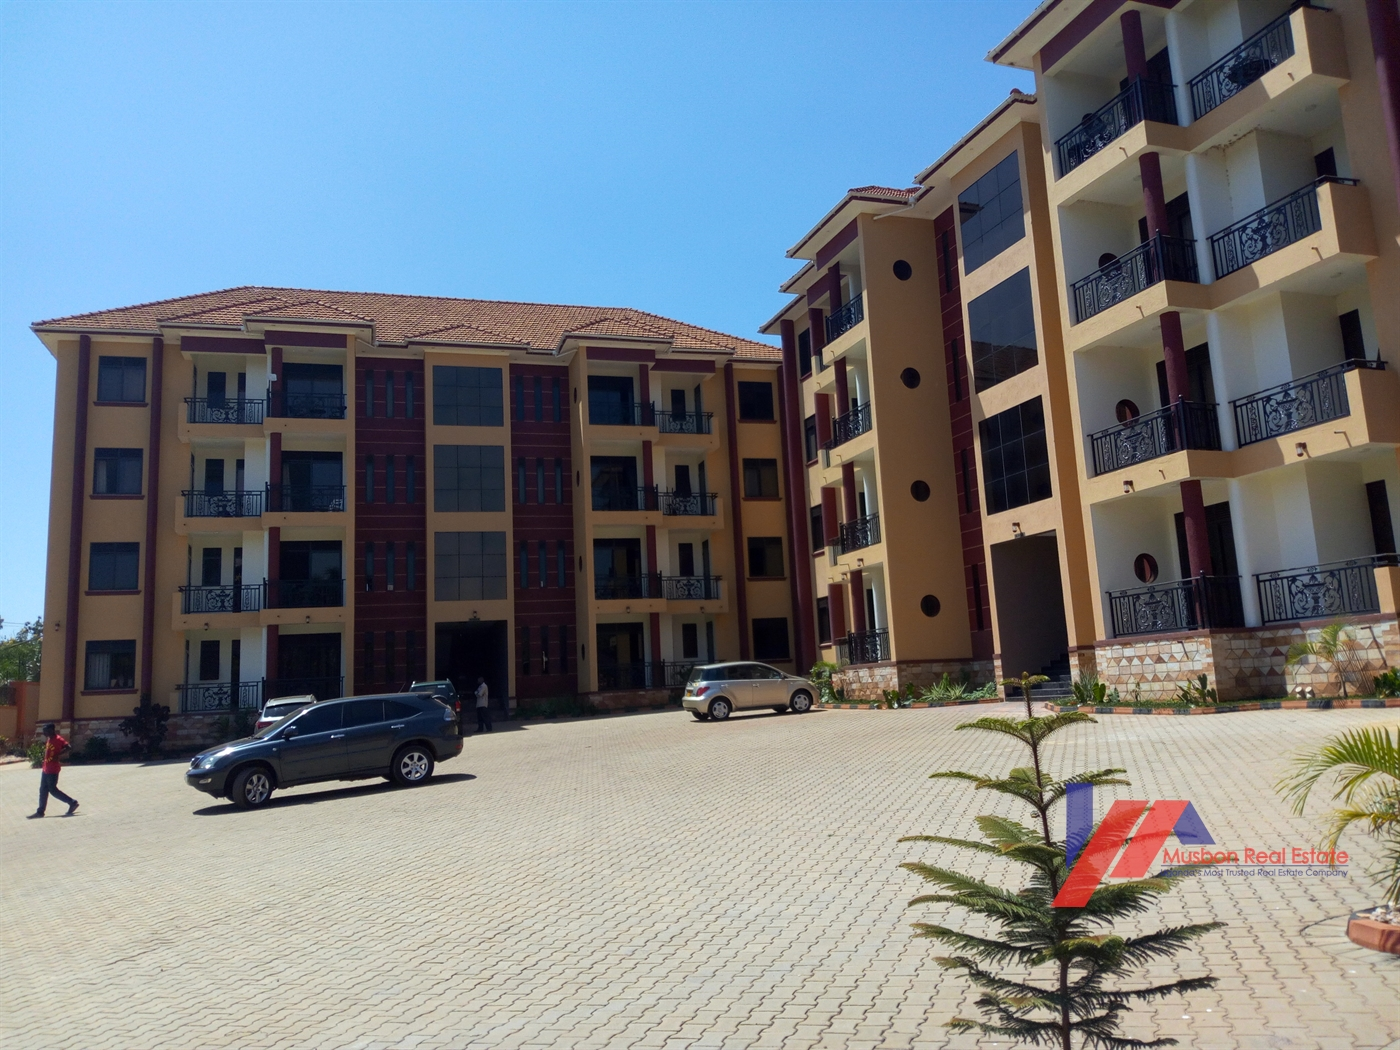 Apartment block for sale in Luzira Kampala